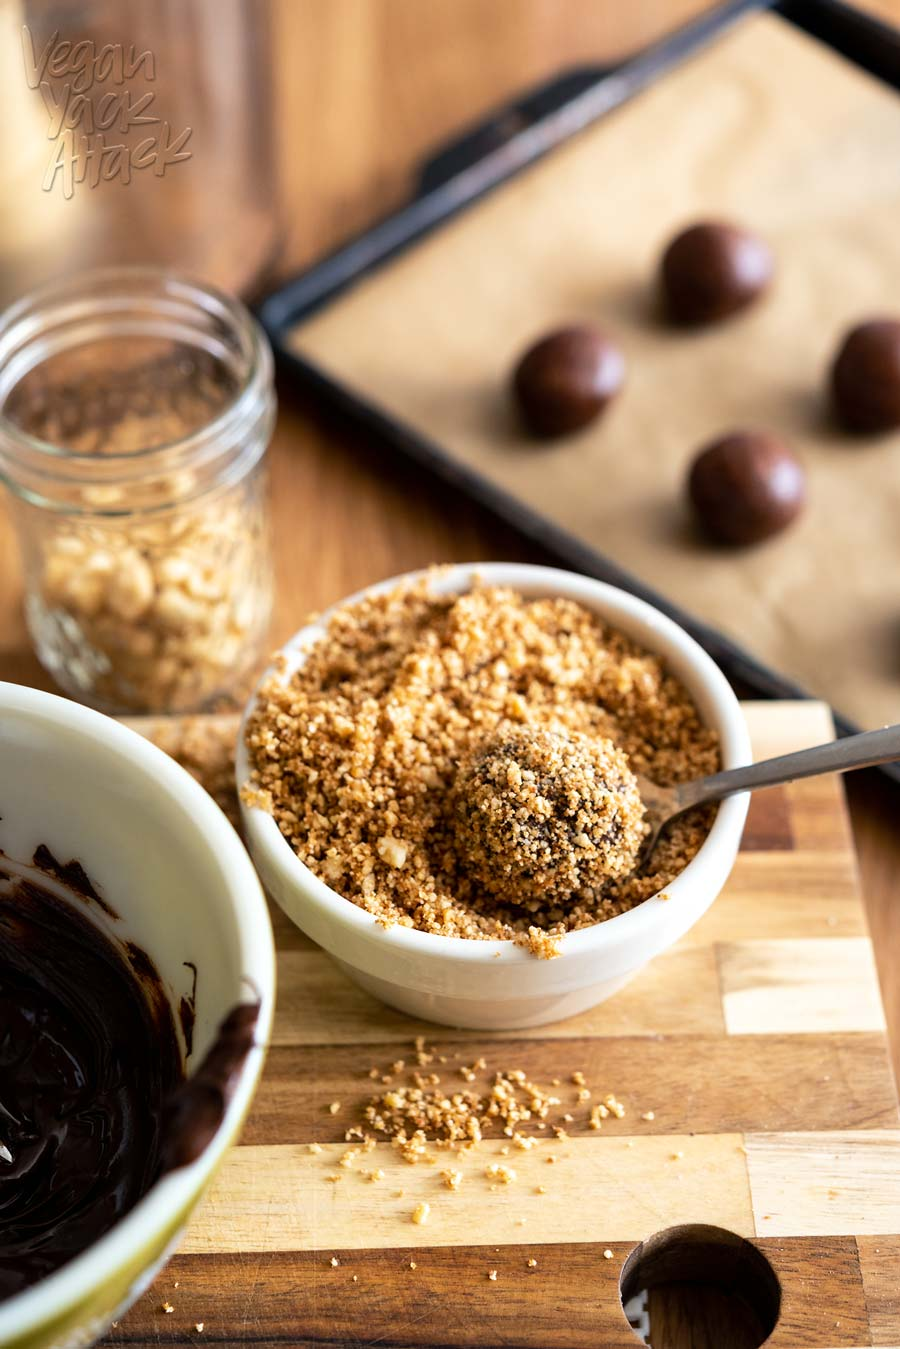 Easy-to-make and with only 8 ingredients, these Chocolate Peanut Butter Candy Bites are perfect for satiating that sweet tooth in no time! From The Vegan 8 Cookbook, by Brandi Doming. #vegan #glutenfree #soyfree